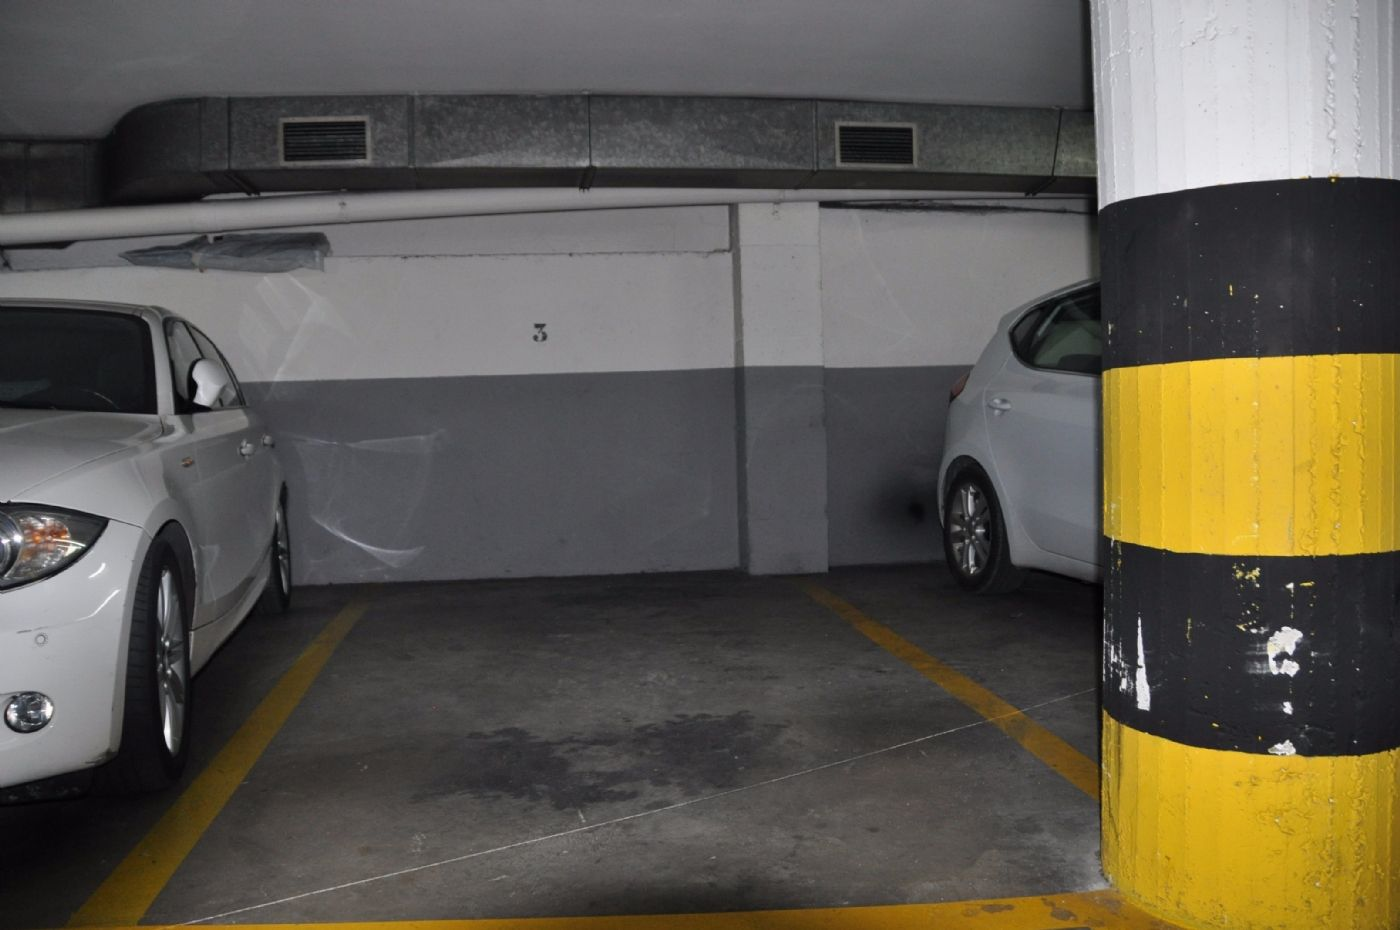 Car parking in Passatge miro, 30. Plaza de parking en cirera